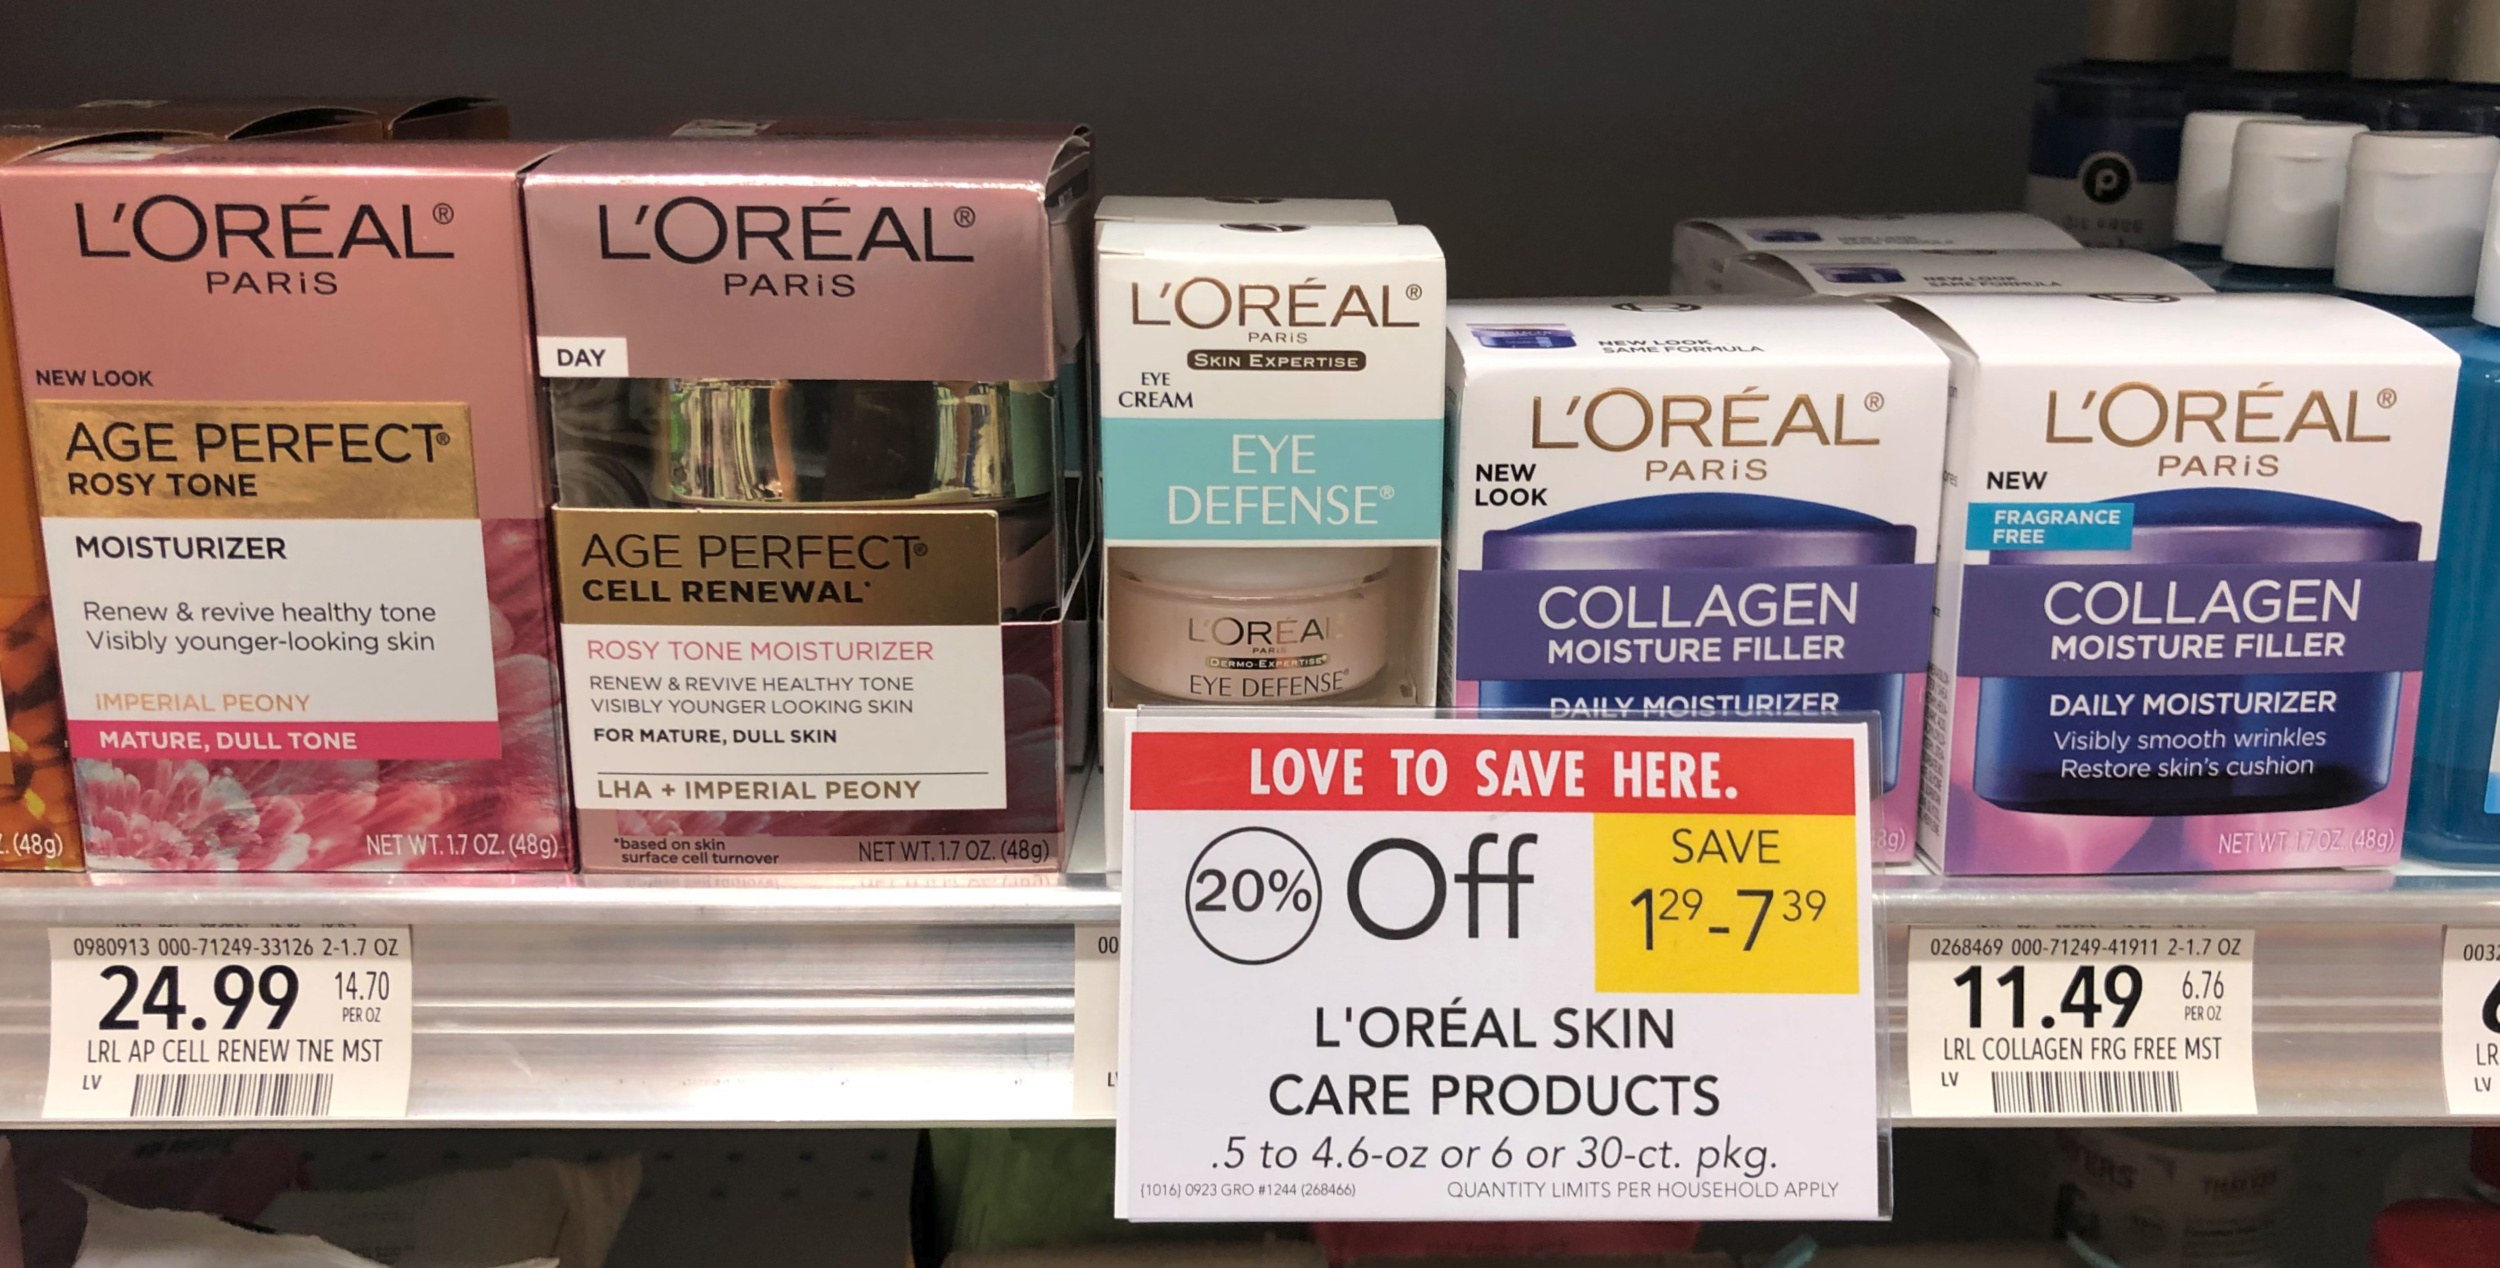 New L'Oreal Skincare Coupon Means Nice Deals At Publix on I Heart Publix 1